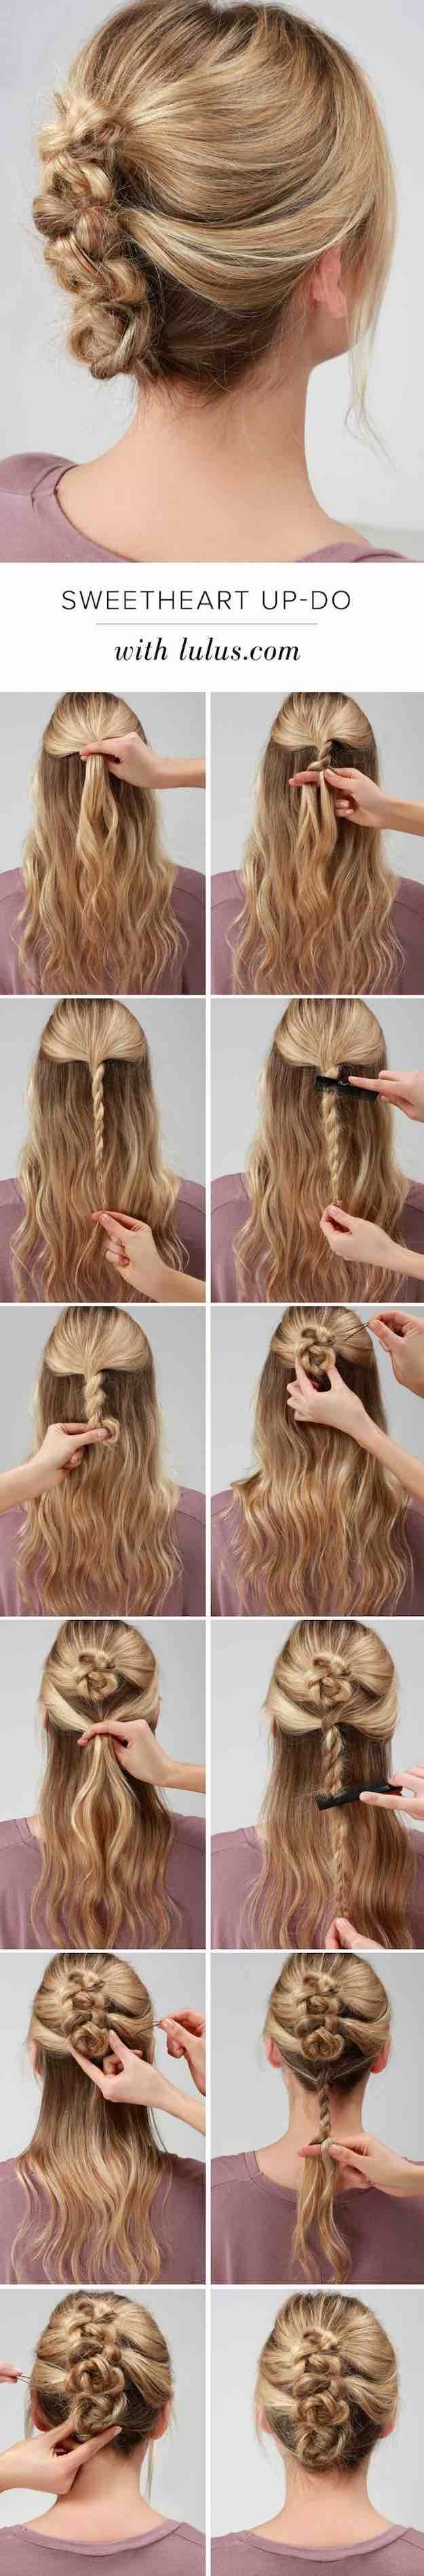 22 Best Beauty Tips for 2017 -Lulus How-To: Sweetheart Twisted Up-Do -The Best E...